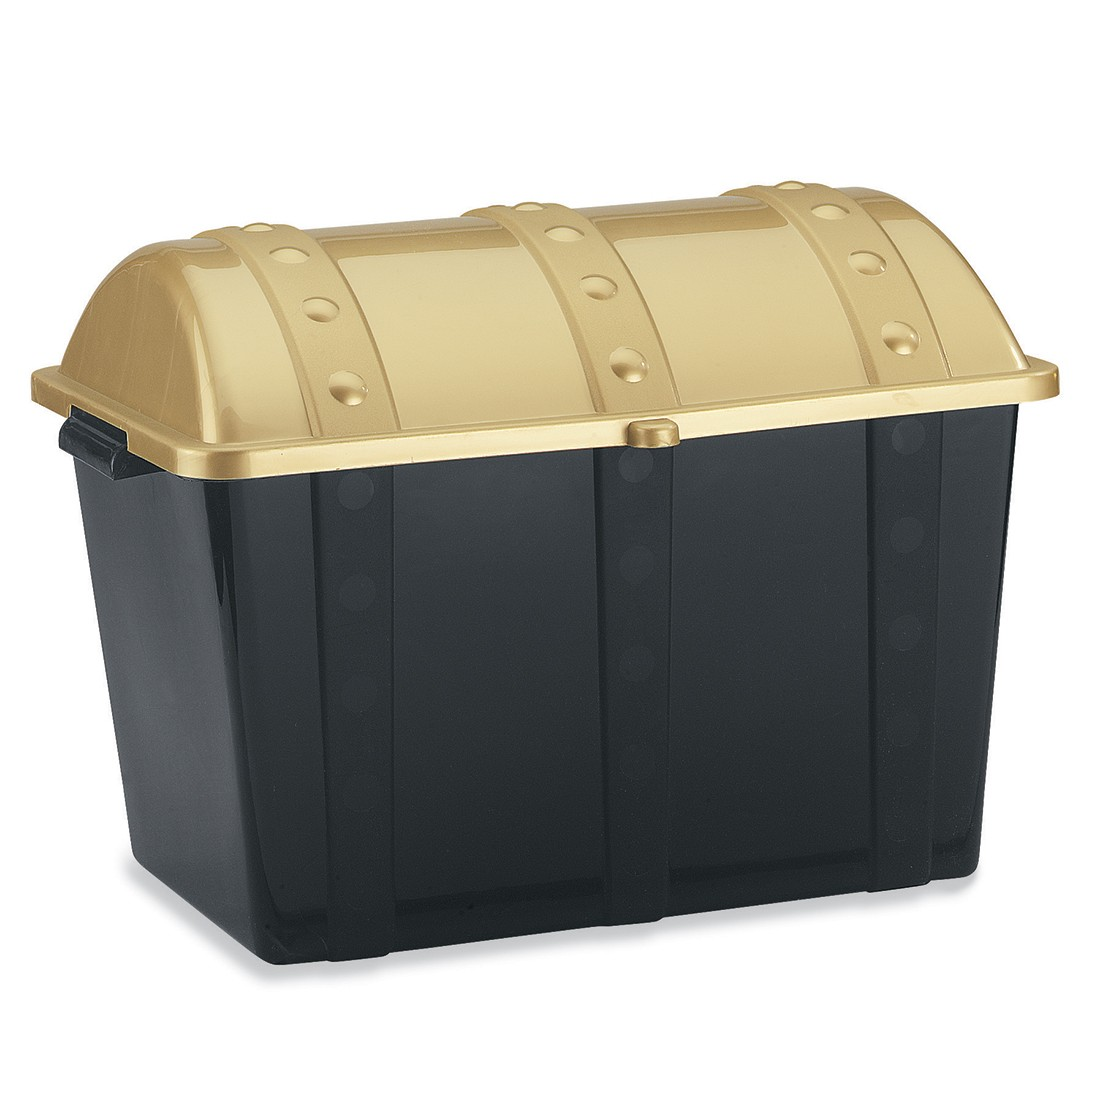 Plastic Treasure Chest [image]